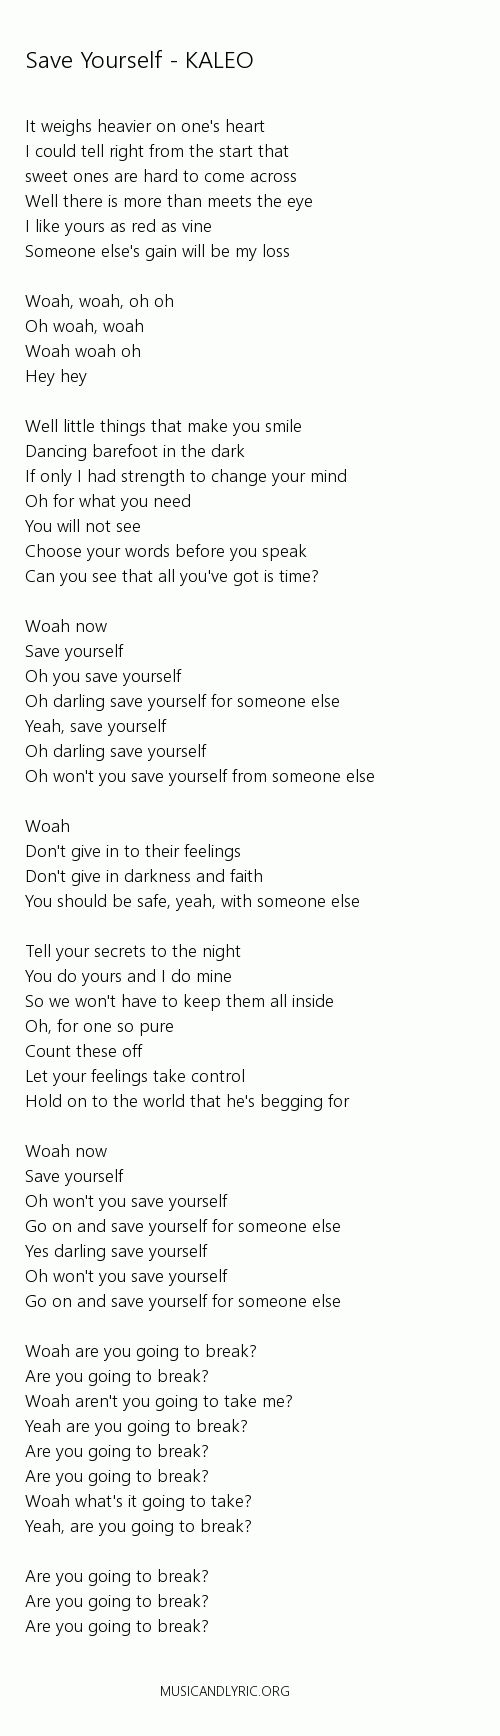 Kaleo-save yourself lyrics